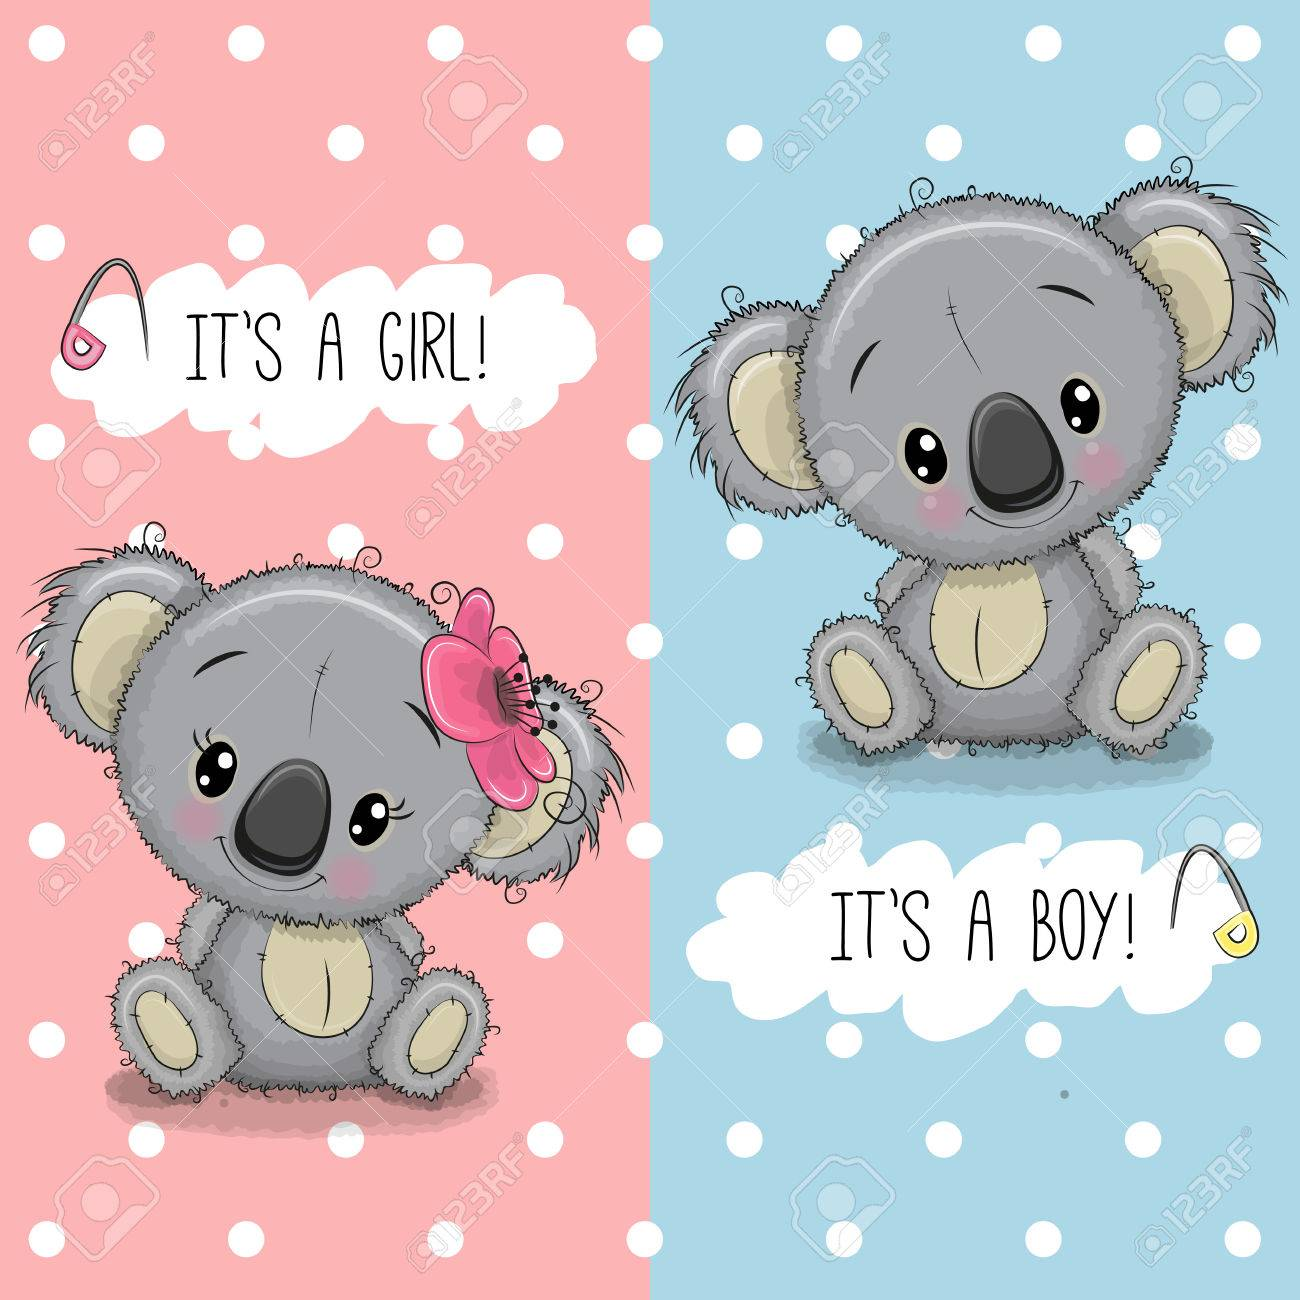 Baby Shower Greeting Card With Cute Koalas Boy And Girl Royalty Free